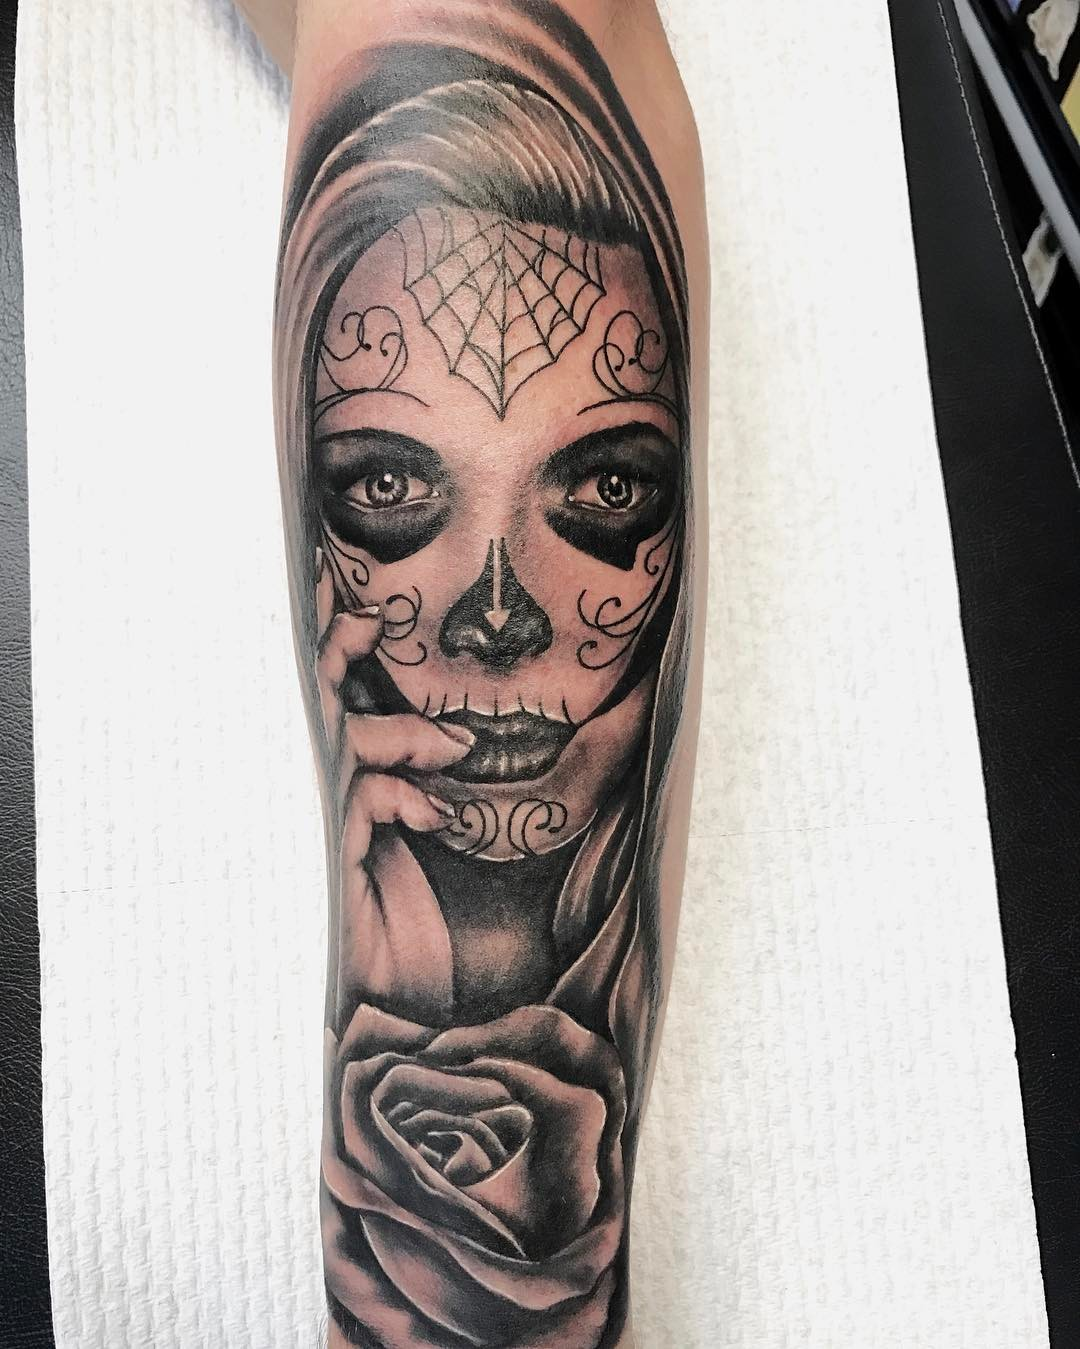 Women S Unique Forearm Tattoos: 125+ Stunning Arm Tattoos For Women